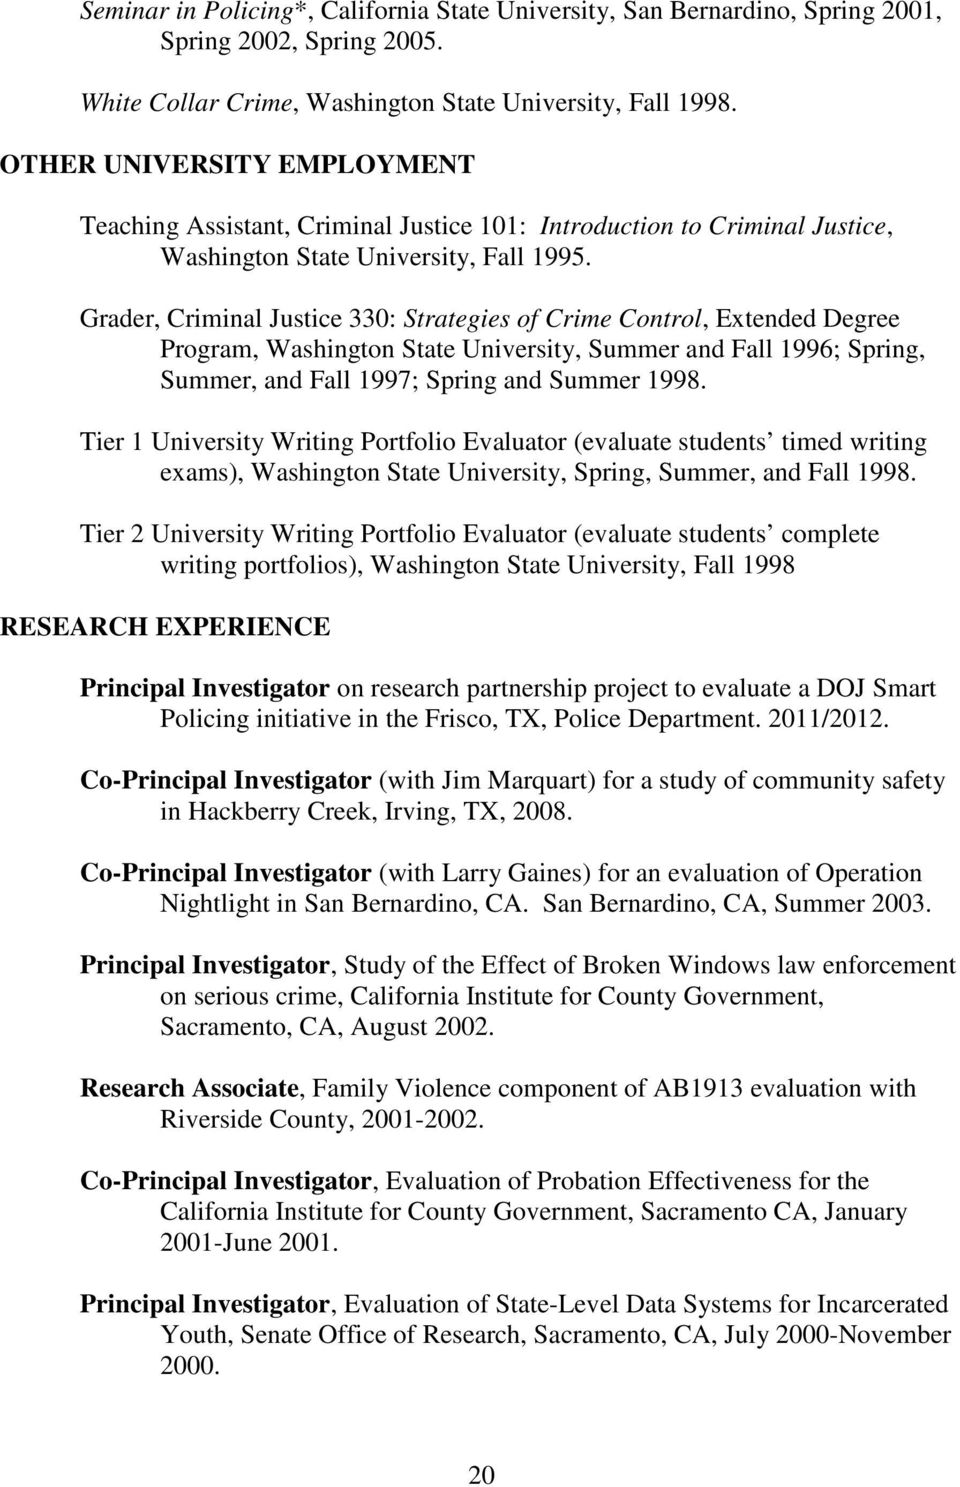 Grader, Criminal Justice 330: Strategies of Crime Control, Extended Degree Program, Washington State University, Summer and Fall 1996; Spring, Summer, and Fall 1997; Spring and Summer 1998.